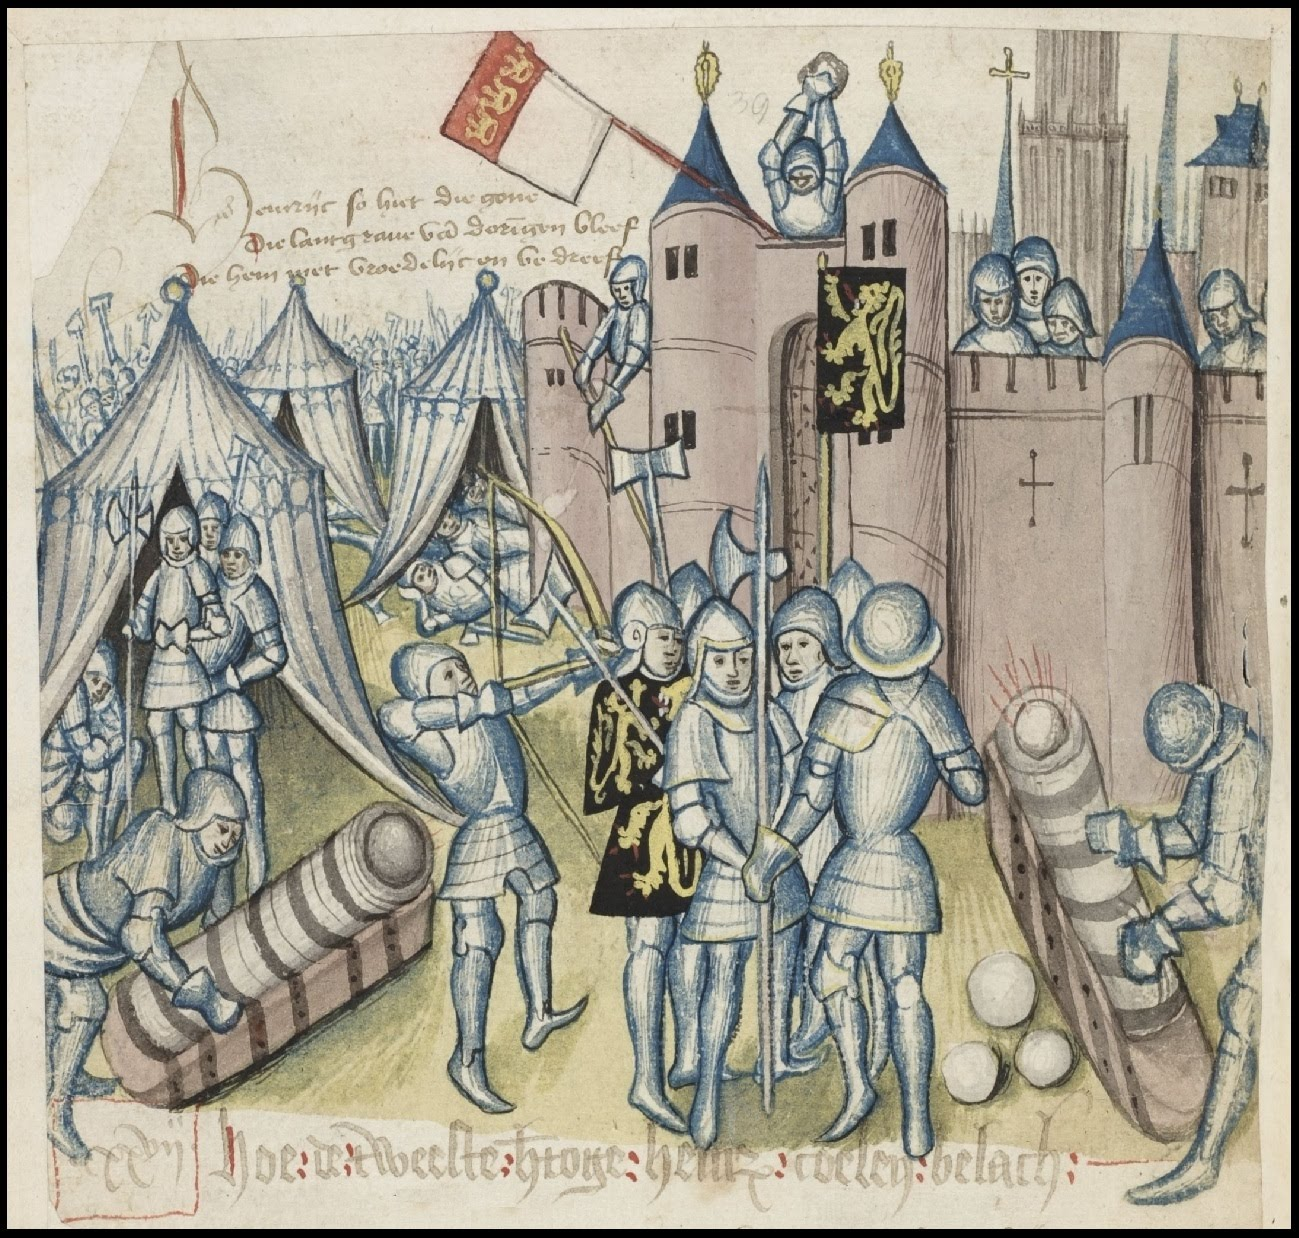 soldiers in armour lay siege to castle - illustration